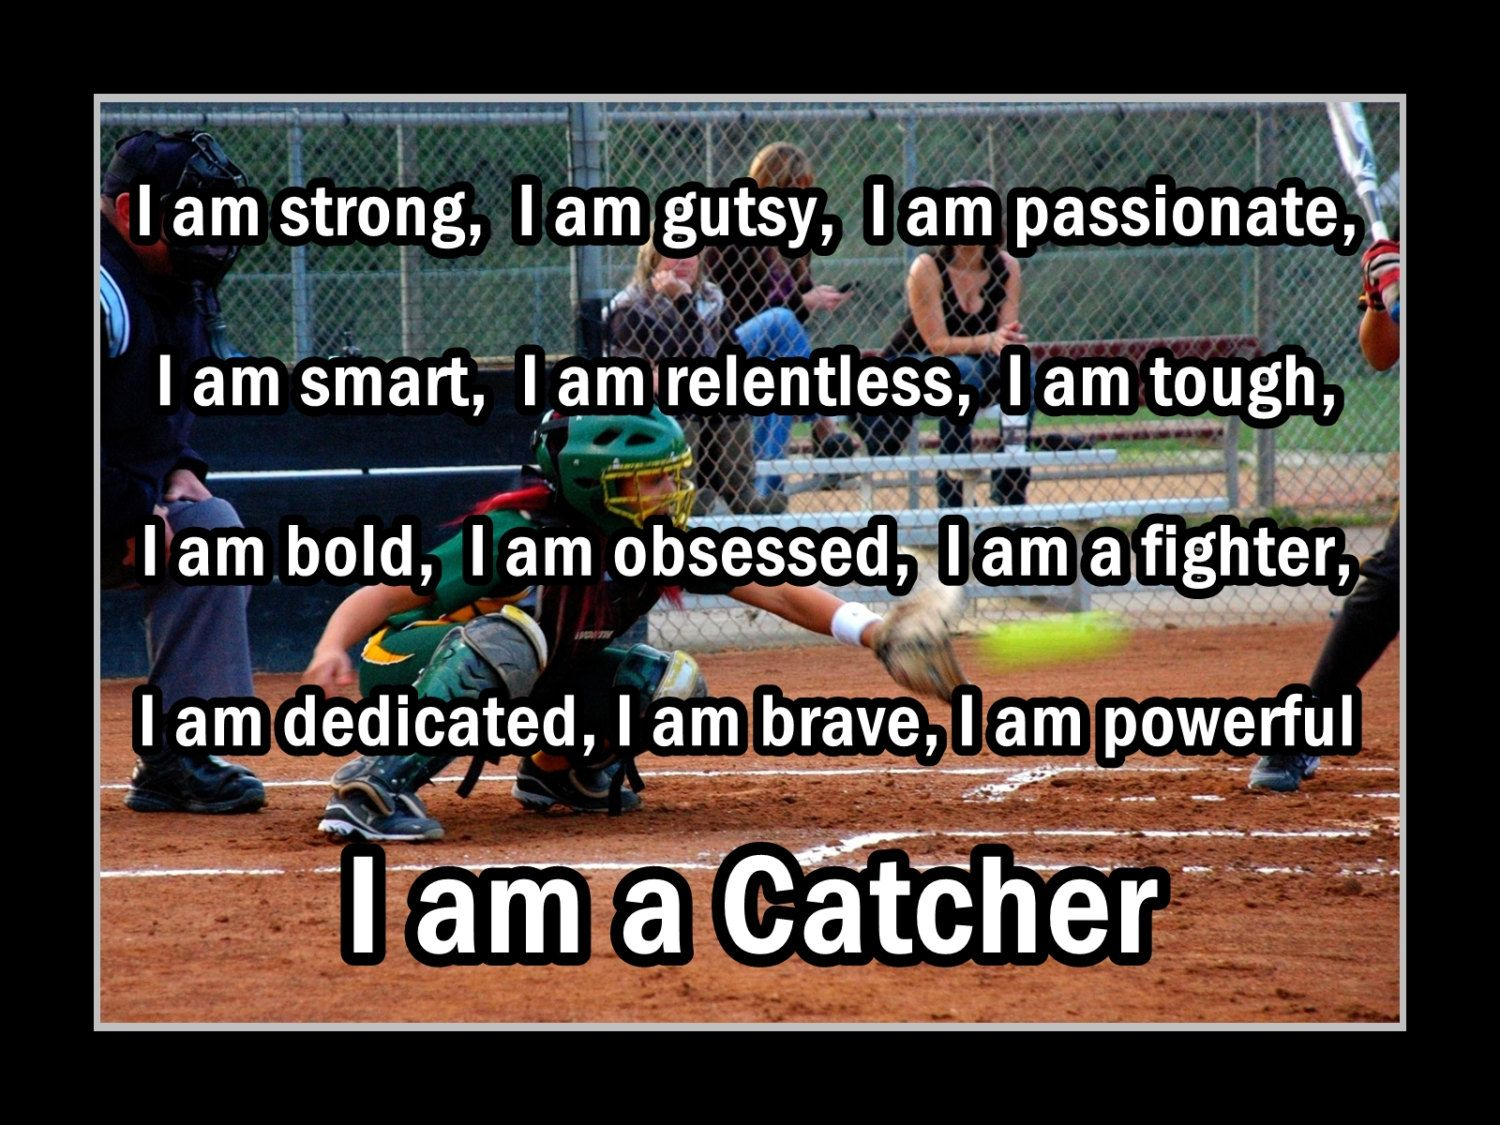 Softball friendship quotes quotesgram - Best 25 Catcher Quotes Ideas On Pinterest Softball Catcher Softball Catcher Quotes And Softball Pitcher Quotes